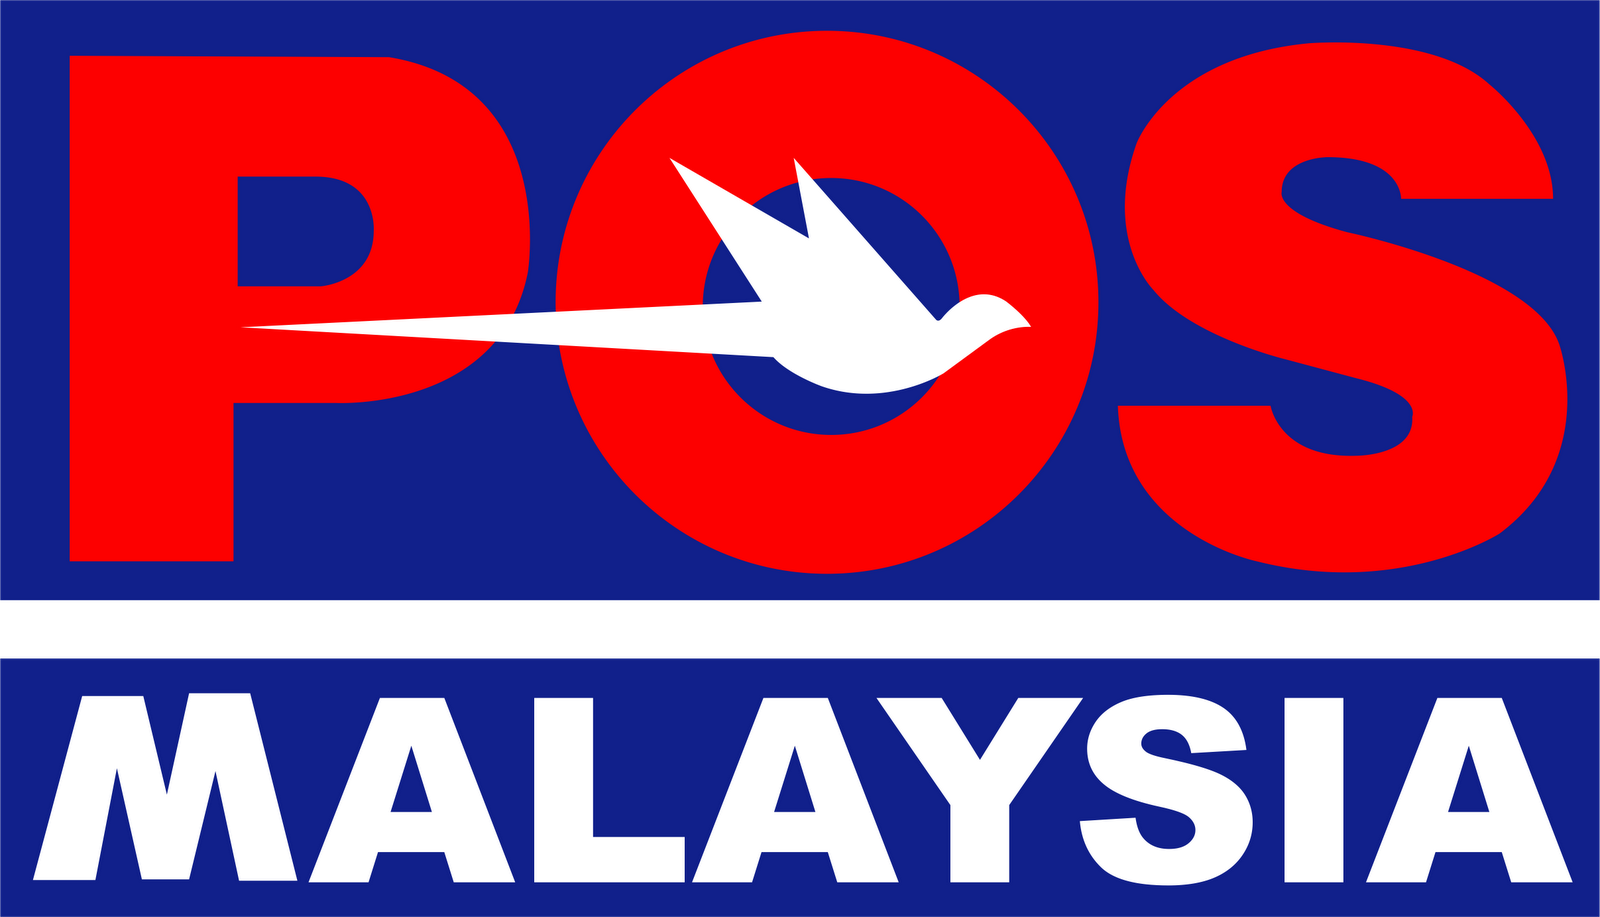 pos malaysia electrical logos images for distributors electrical logos images for distributors